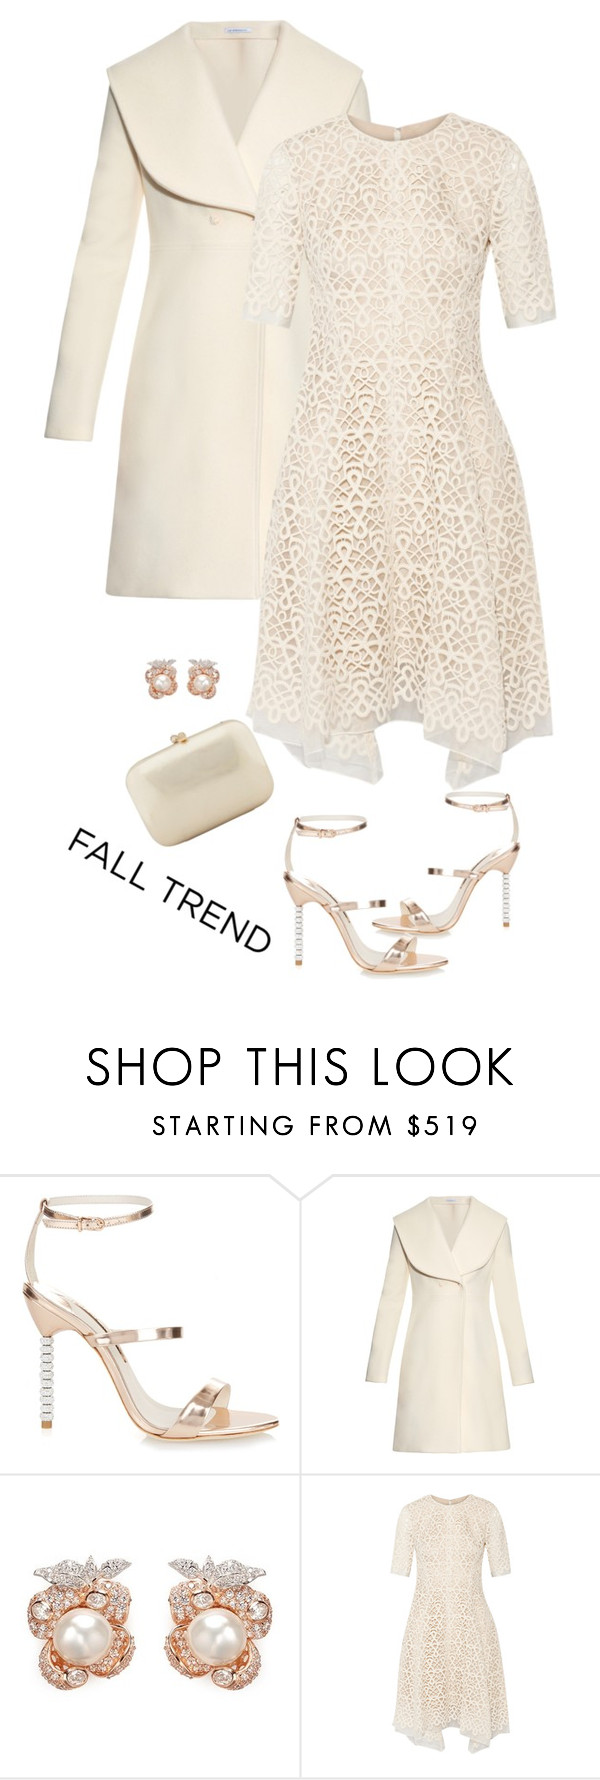 """""""Rose gold"""" by soniamazeto ❤ liked on Polyvore featuring Sophia Webster, J.W. Anderson, Anabela Chan, Lela Rose, Serpui and rosegold"""